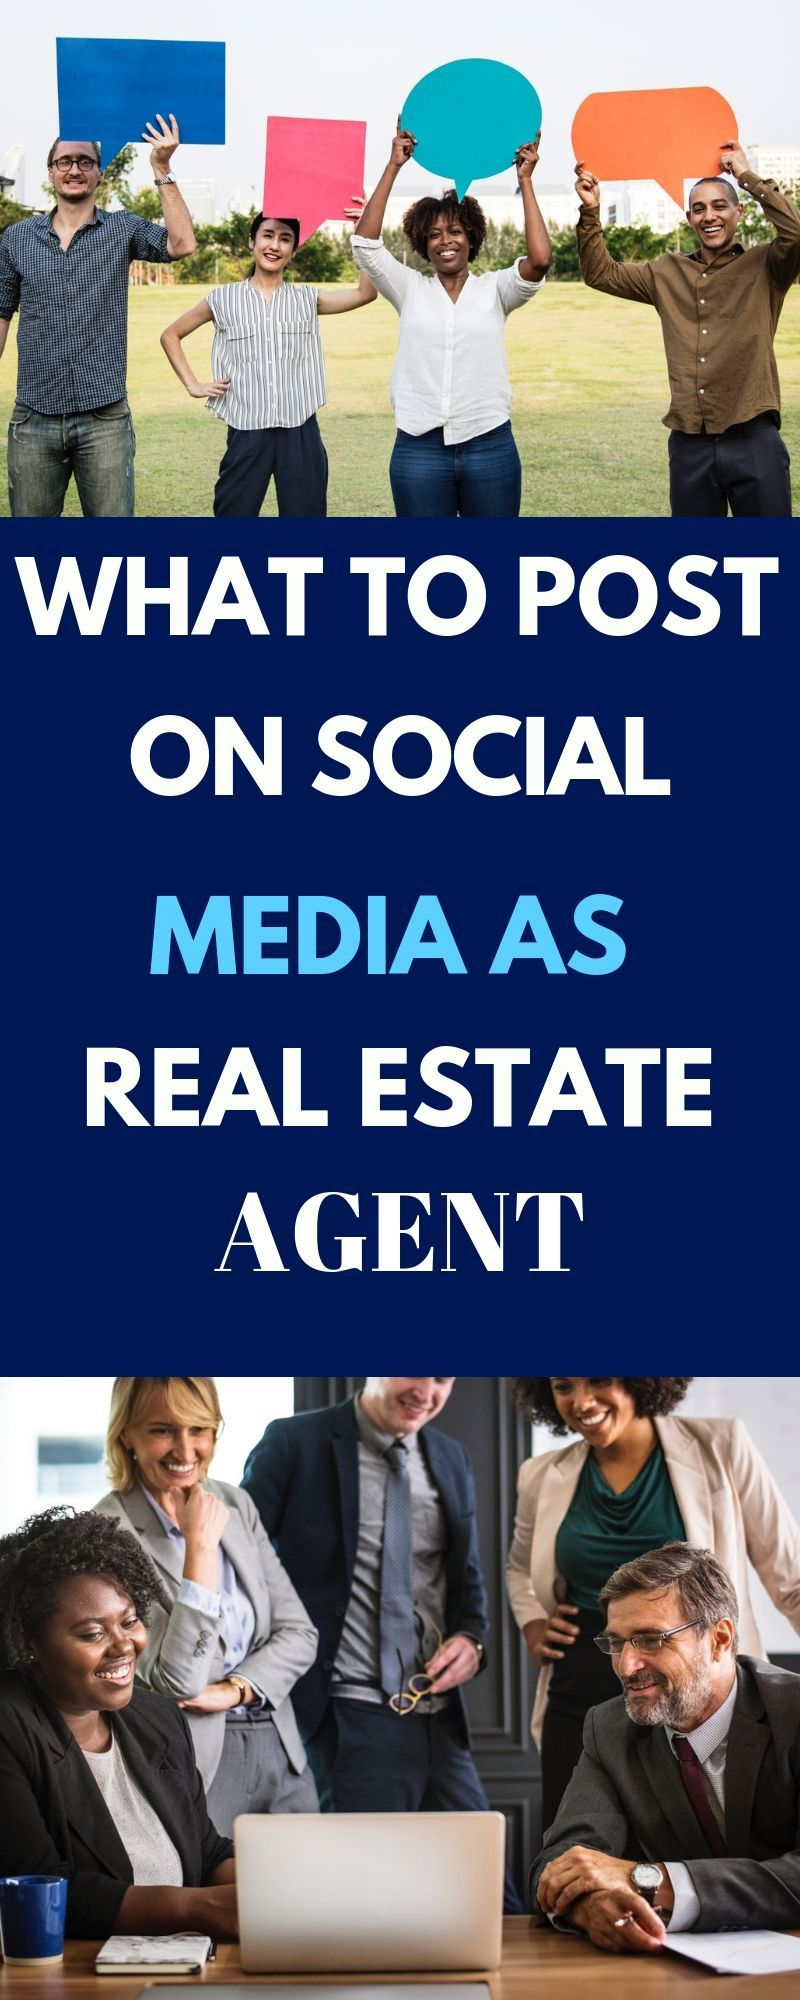 What Should Real Estate Agents Post On Social Media What Should Real Estate Agents Post On Social Media